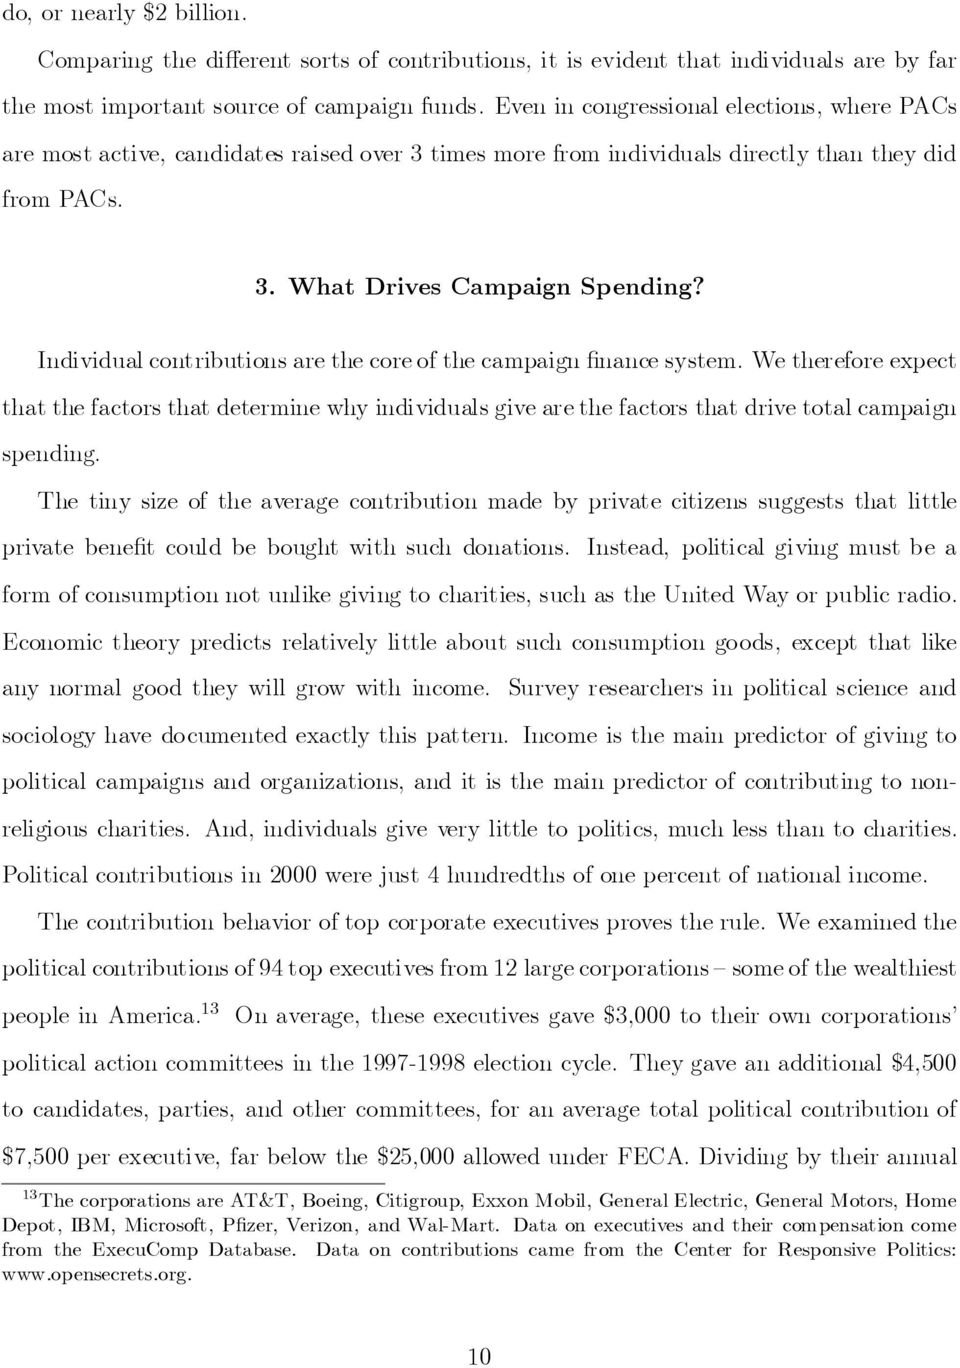 Individual contributions are the coreof the campaign nance system. We therefore expect that the factors that determine why individuals give are the factors that drive total campaign spending.